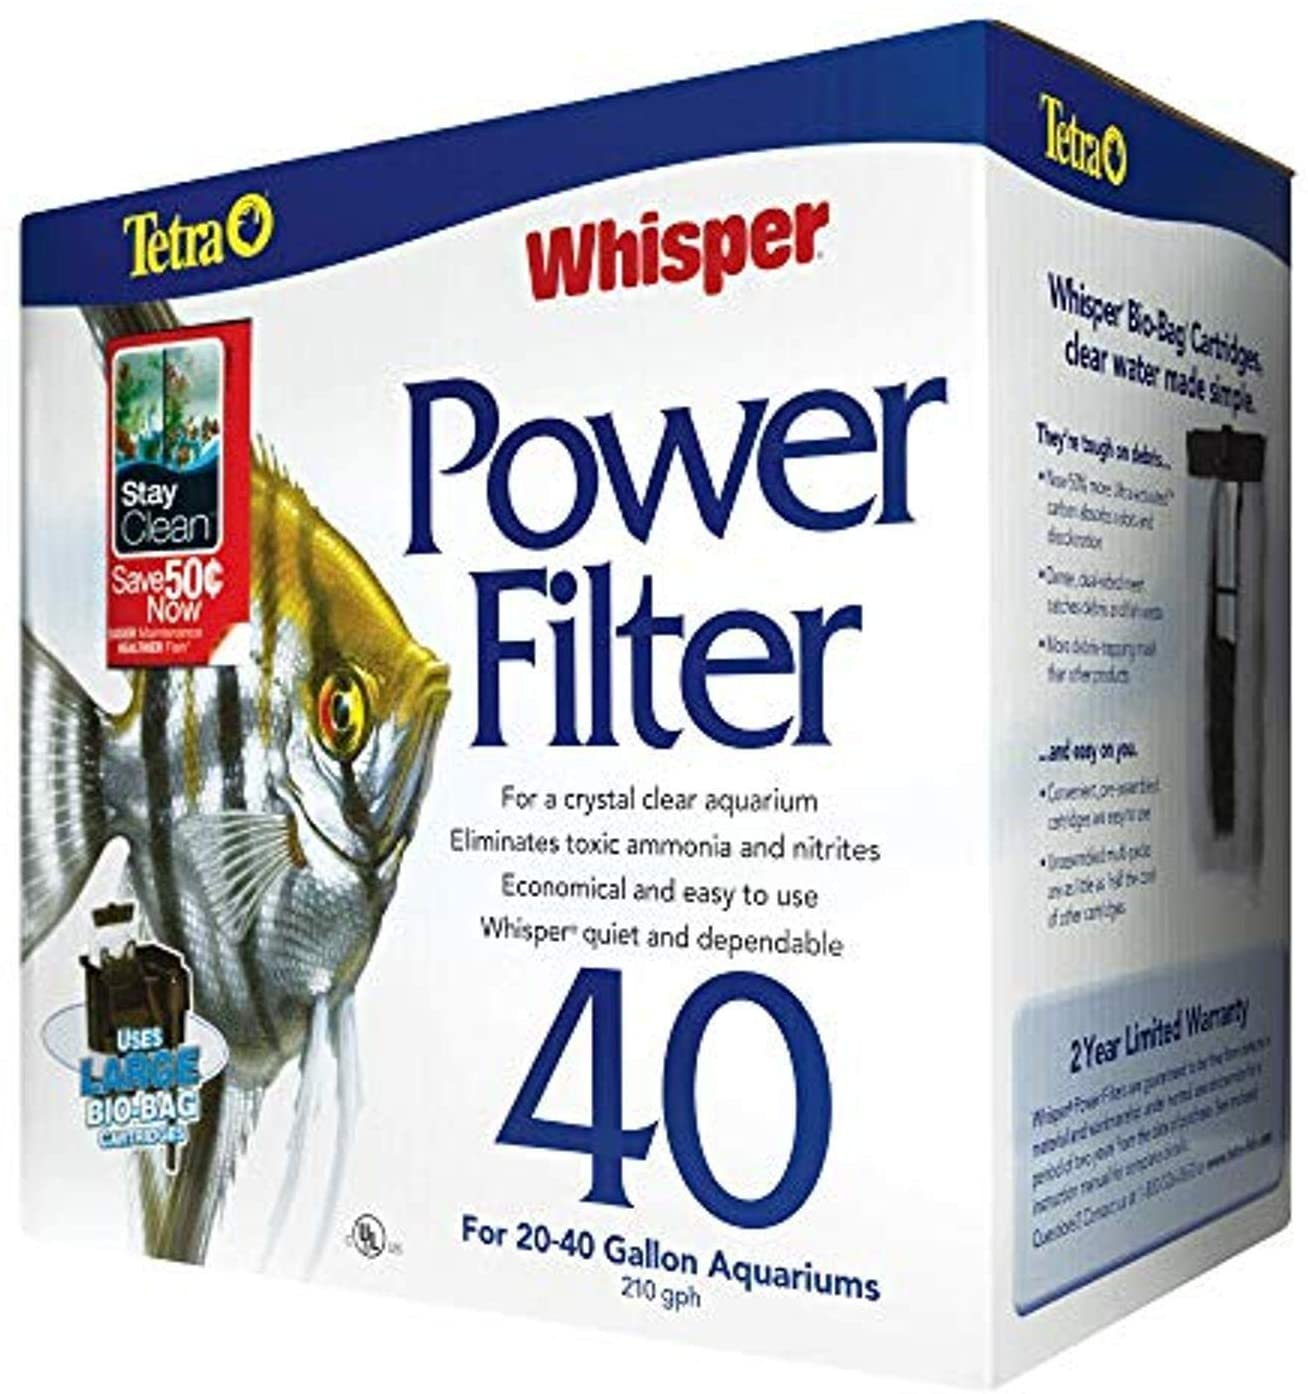 Tetra Whisper Power Filter for Aquariums, 3 Filters in 1